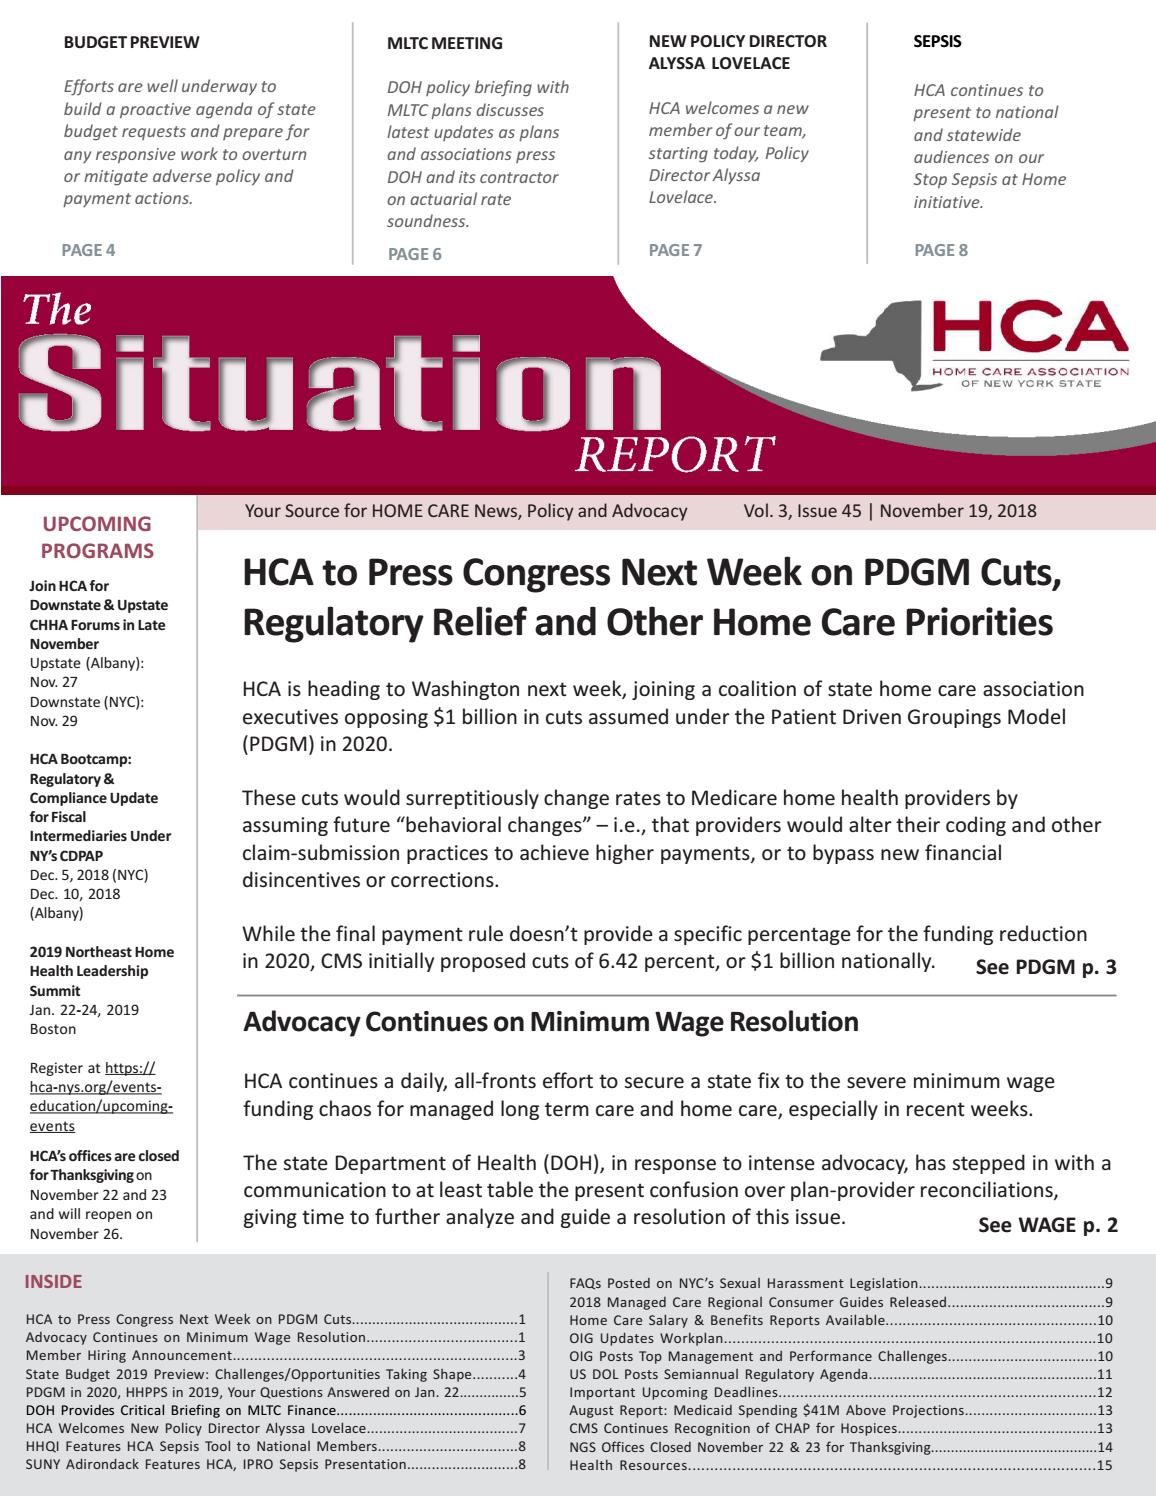 November 19, 2018 Edition of The Situation Report by Home